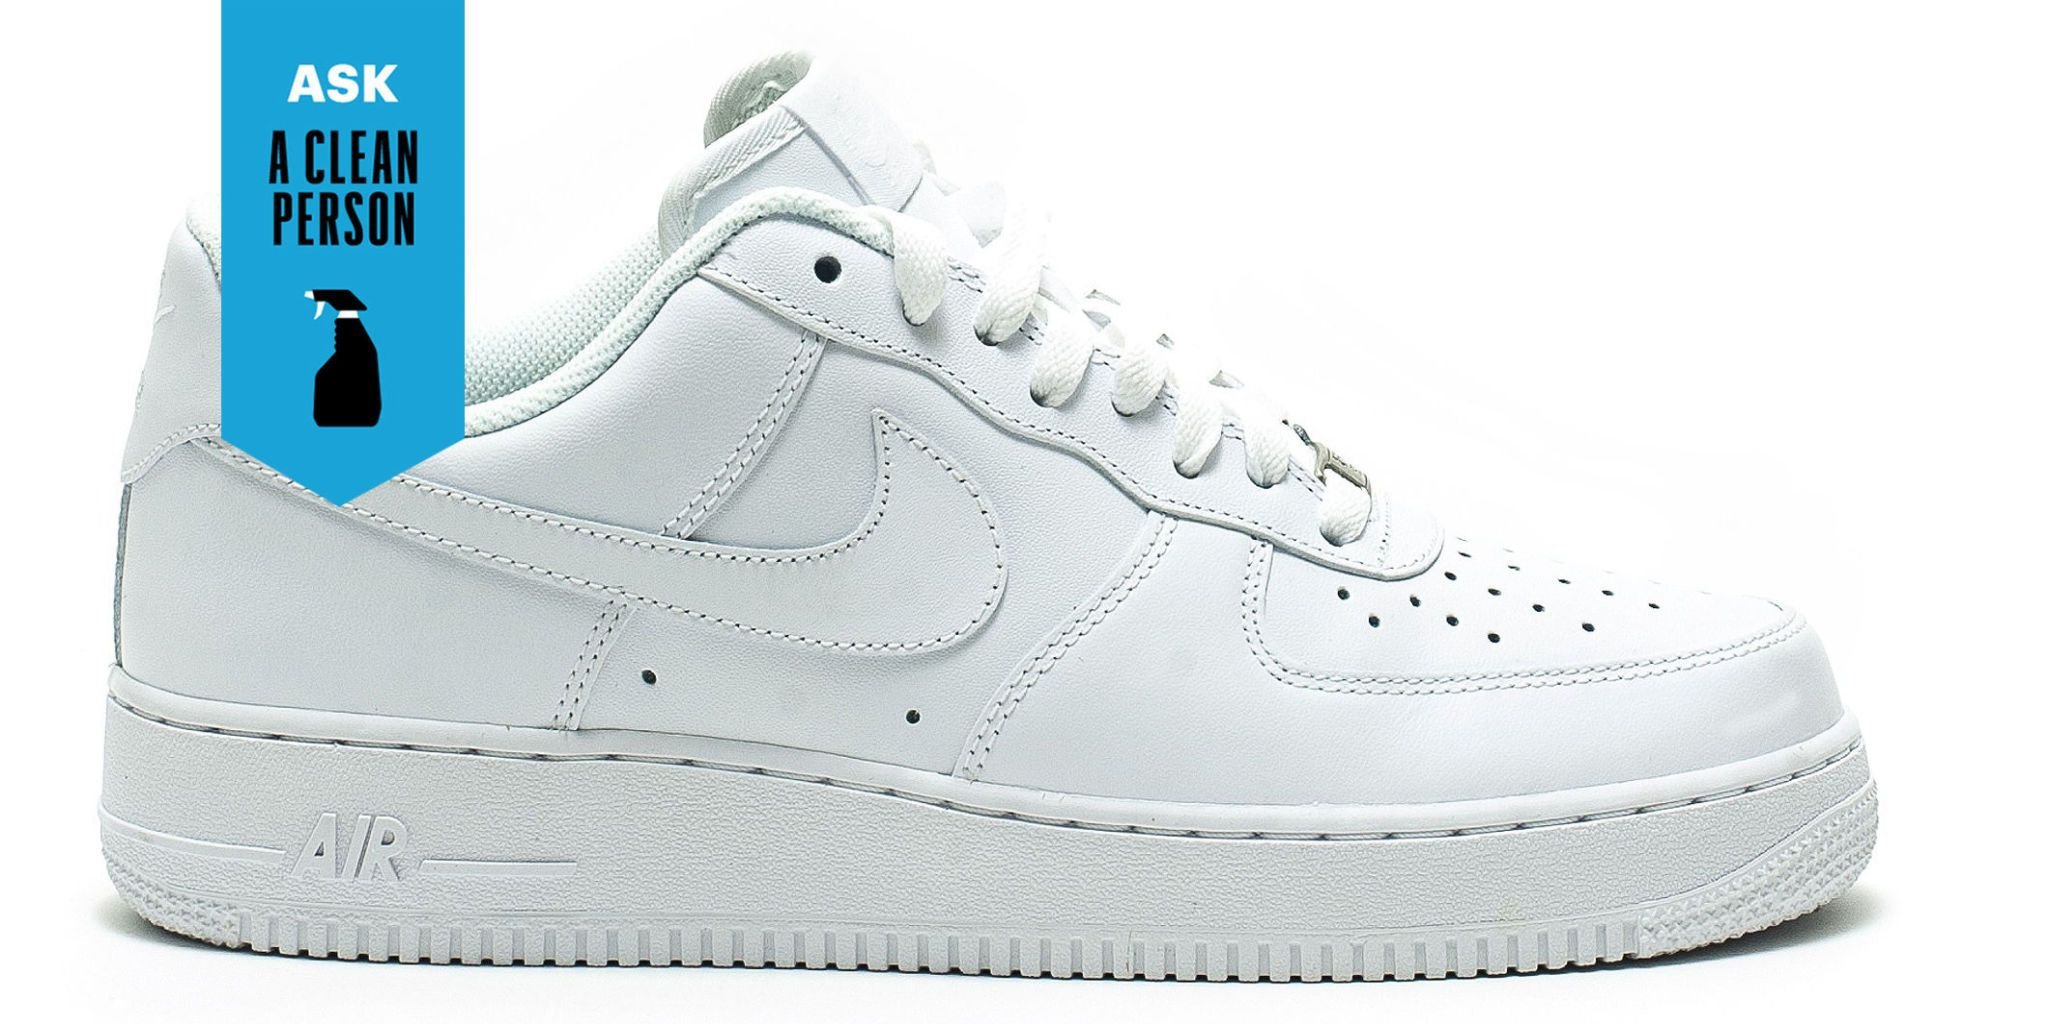 White Sneakers Spotless This Winter